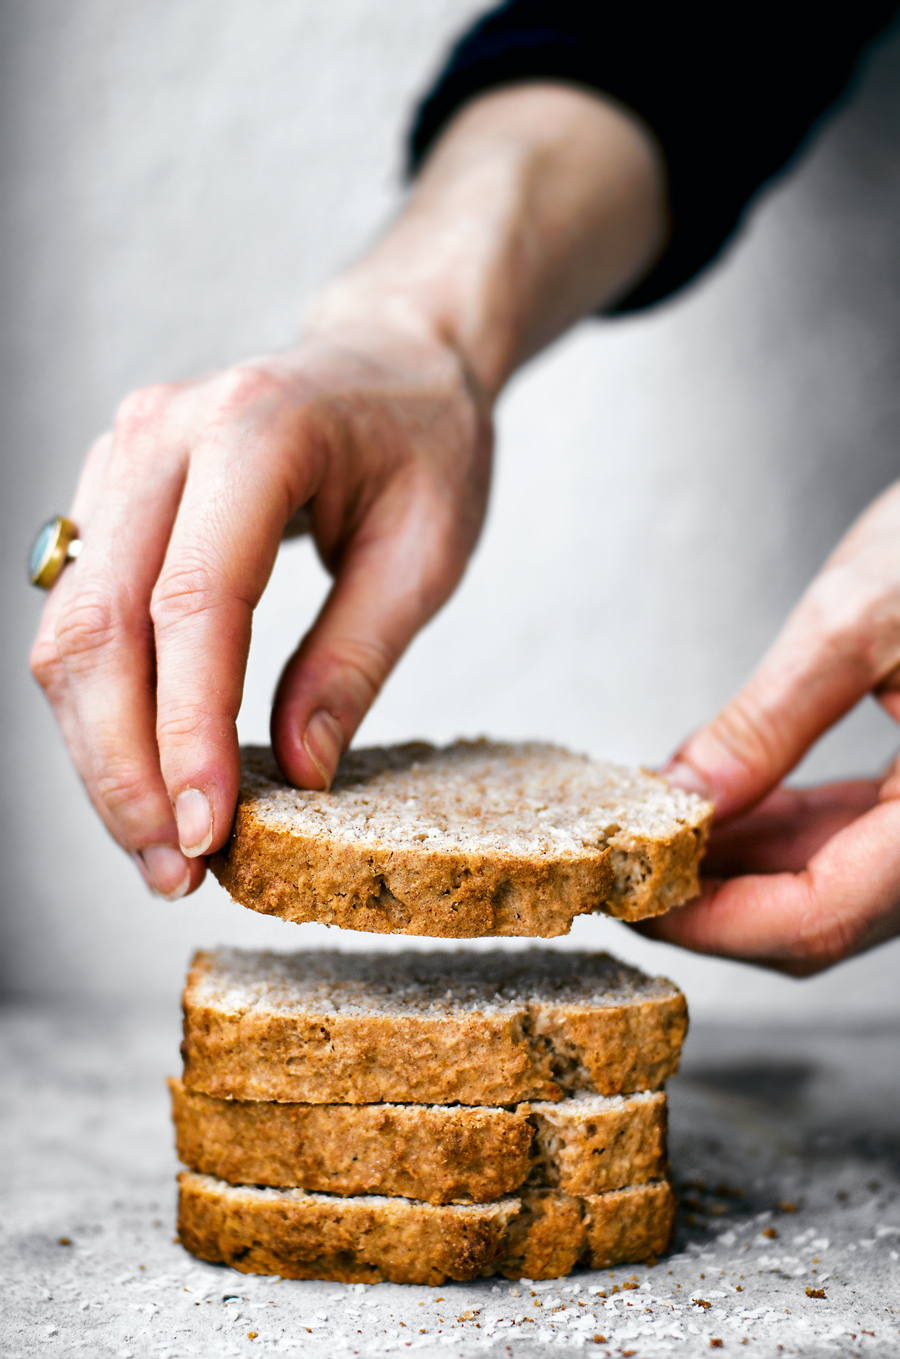 Vegan coconut bread made with shredded coconut, coconut oil, and coconut milk - that's the triple bit! This is a healthy twist on the classic, with just a little maple syrup as sweetener and made with whole wheat spelt flour.